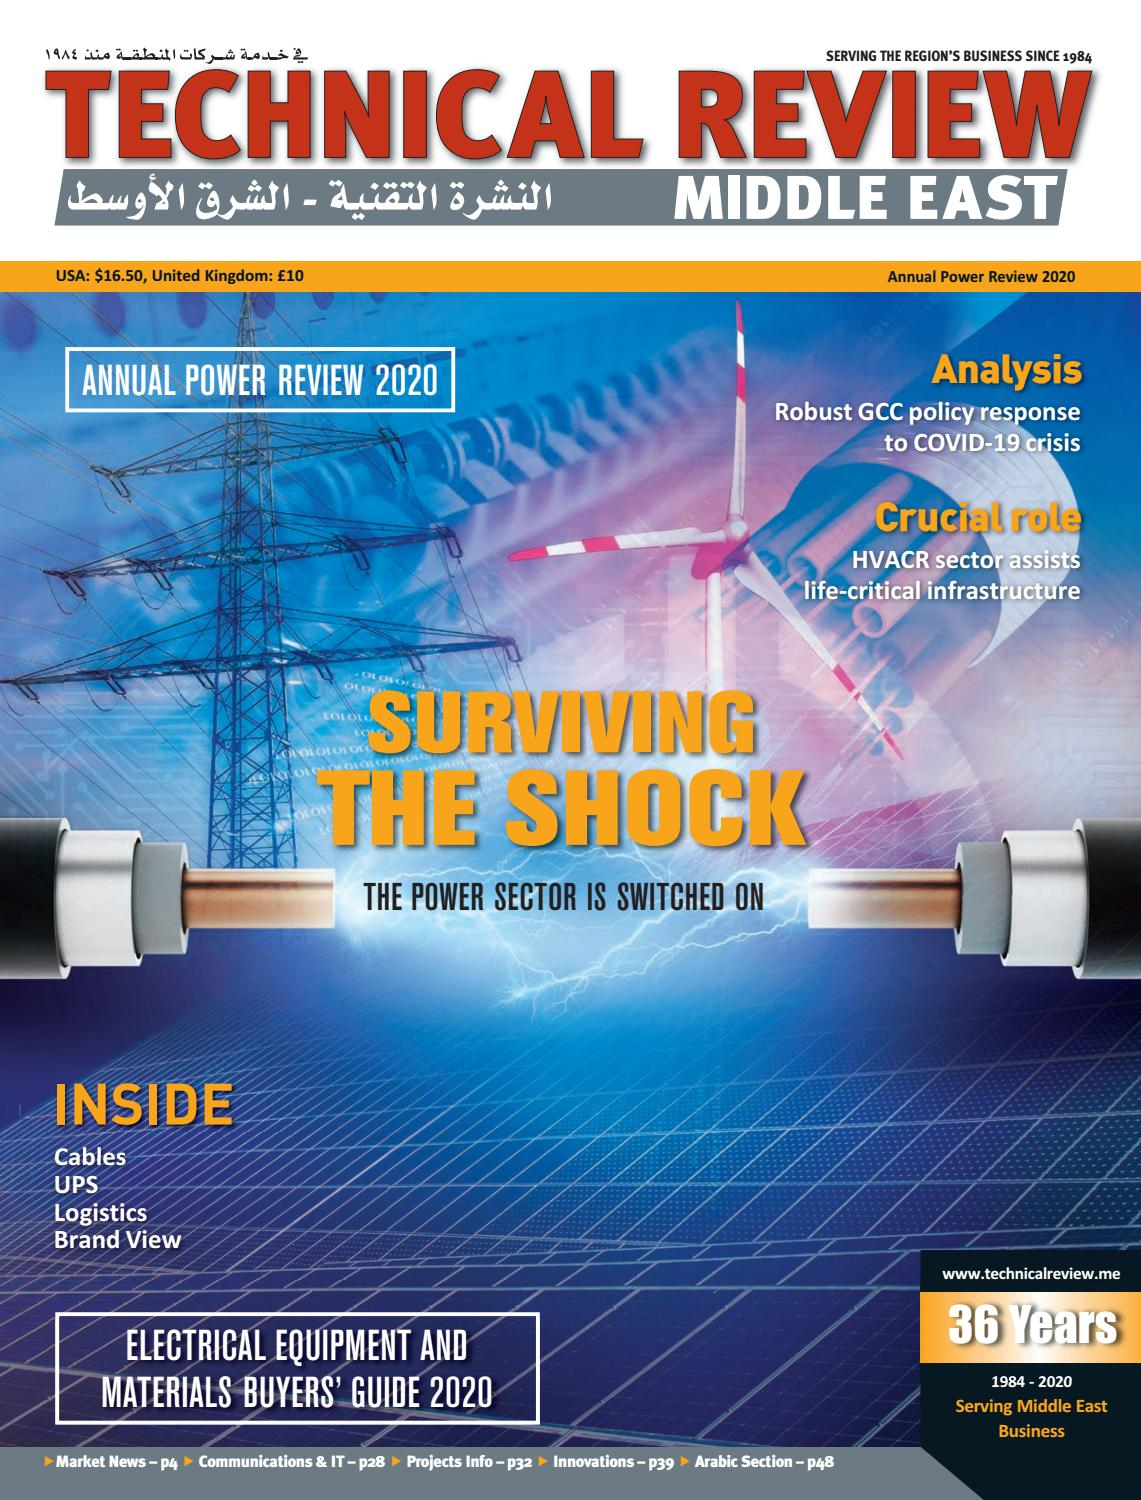 Technical Review Middle East Power 2020 By Alain Charles Publishing Issuu